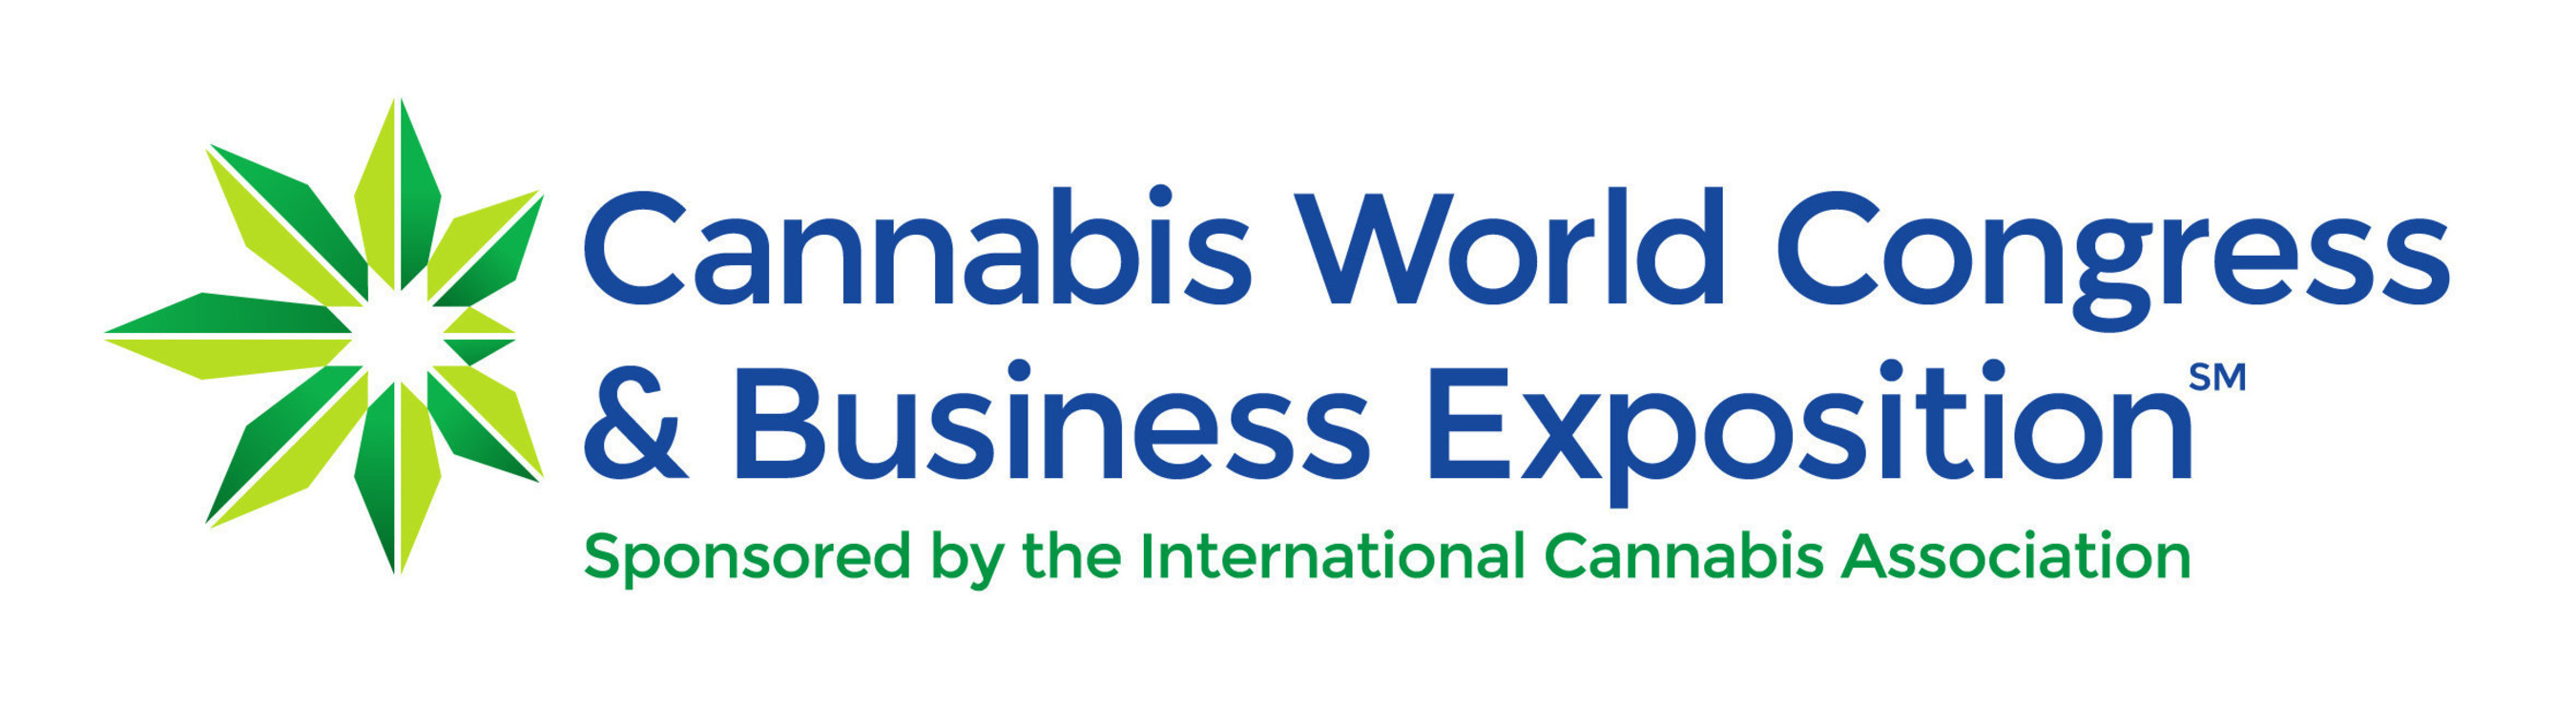 First Cannabis Business Certification Class and Career Workshops Presented at Leading New York Cannabis Trade Show & Conference in June at the Javits Center #CWCBEXPO